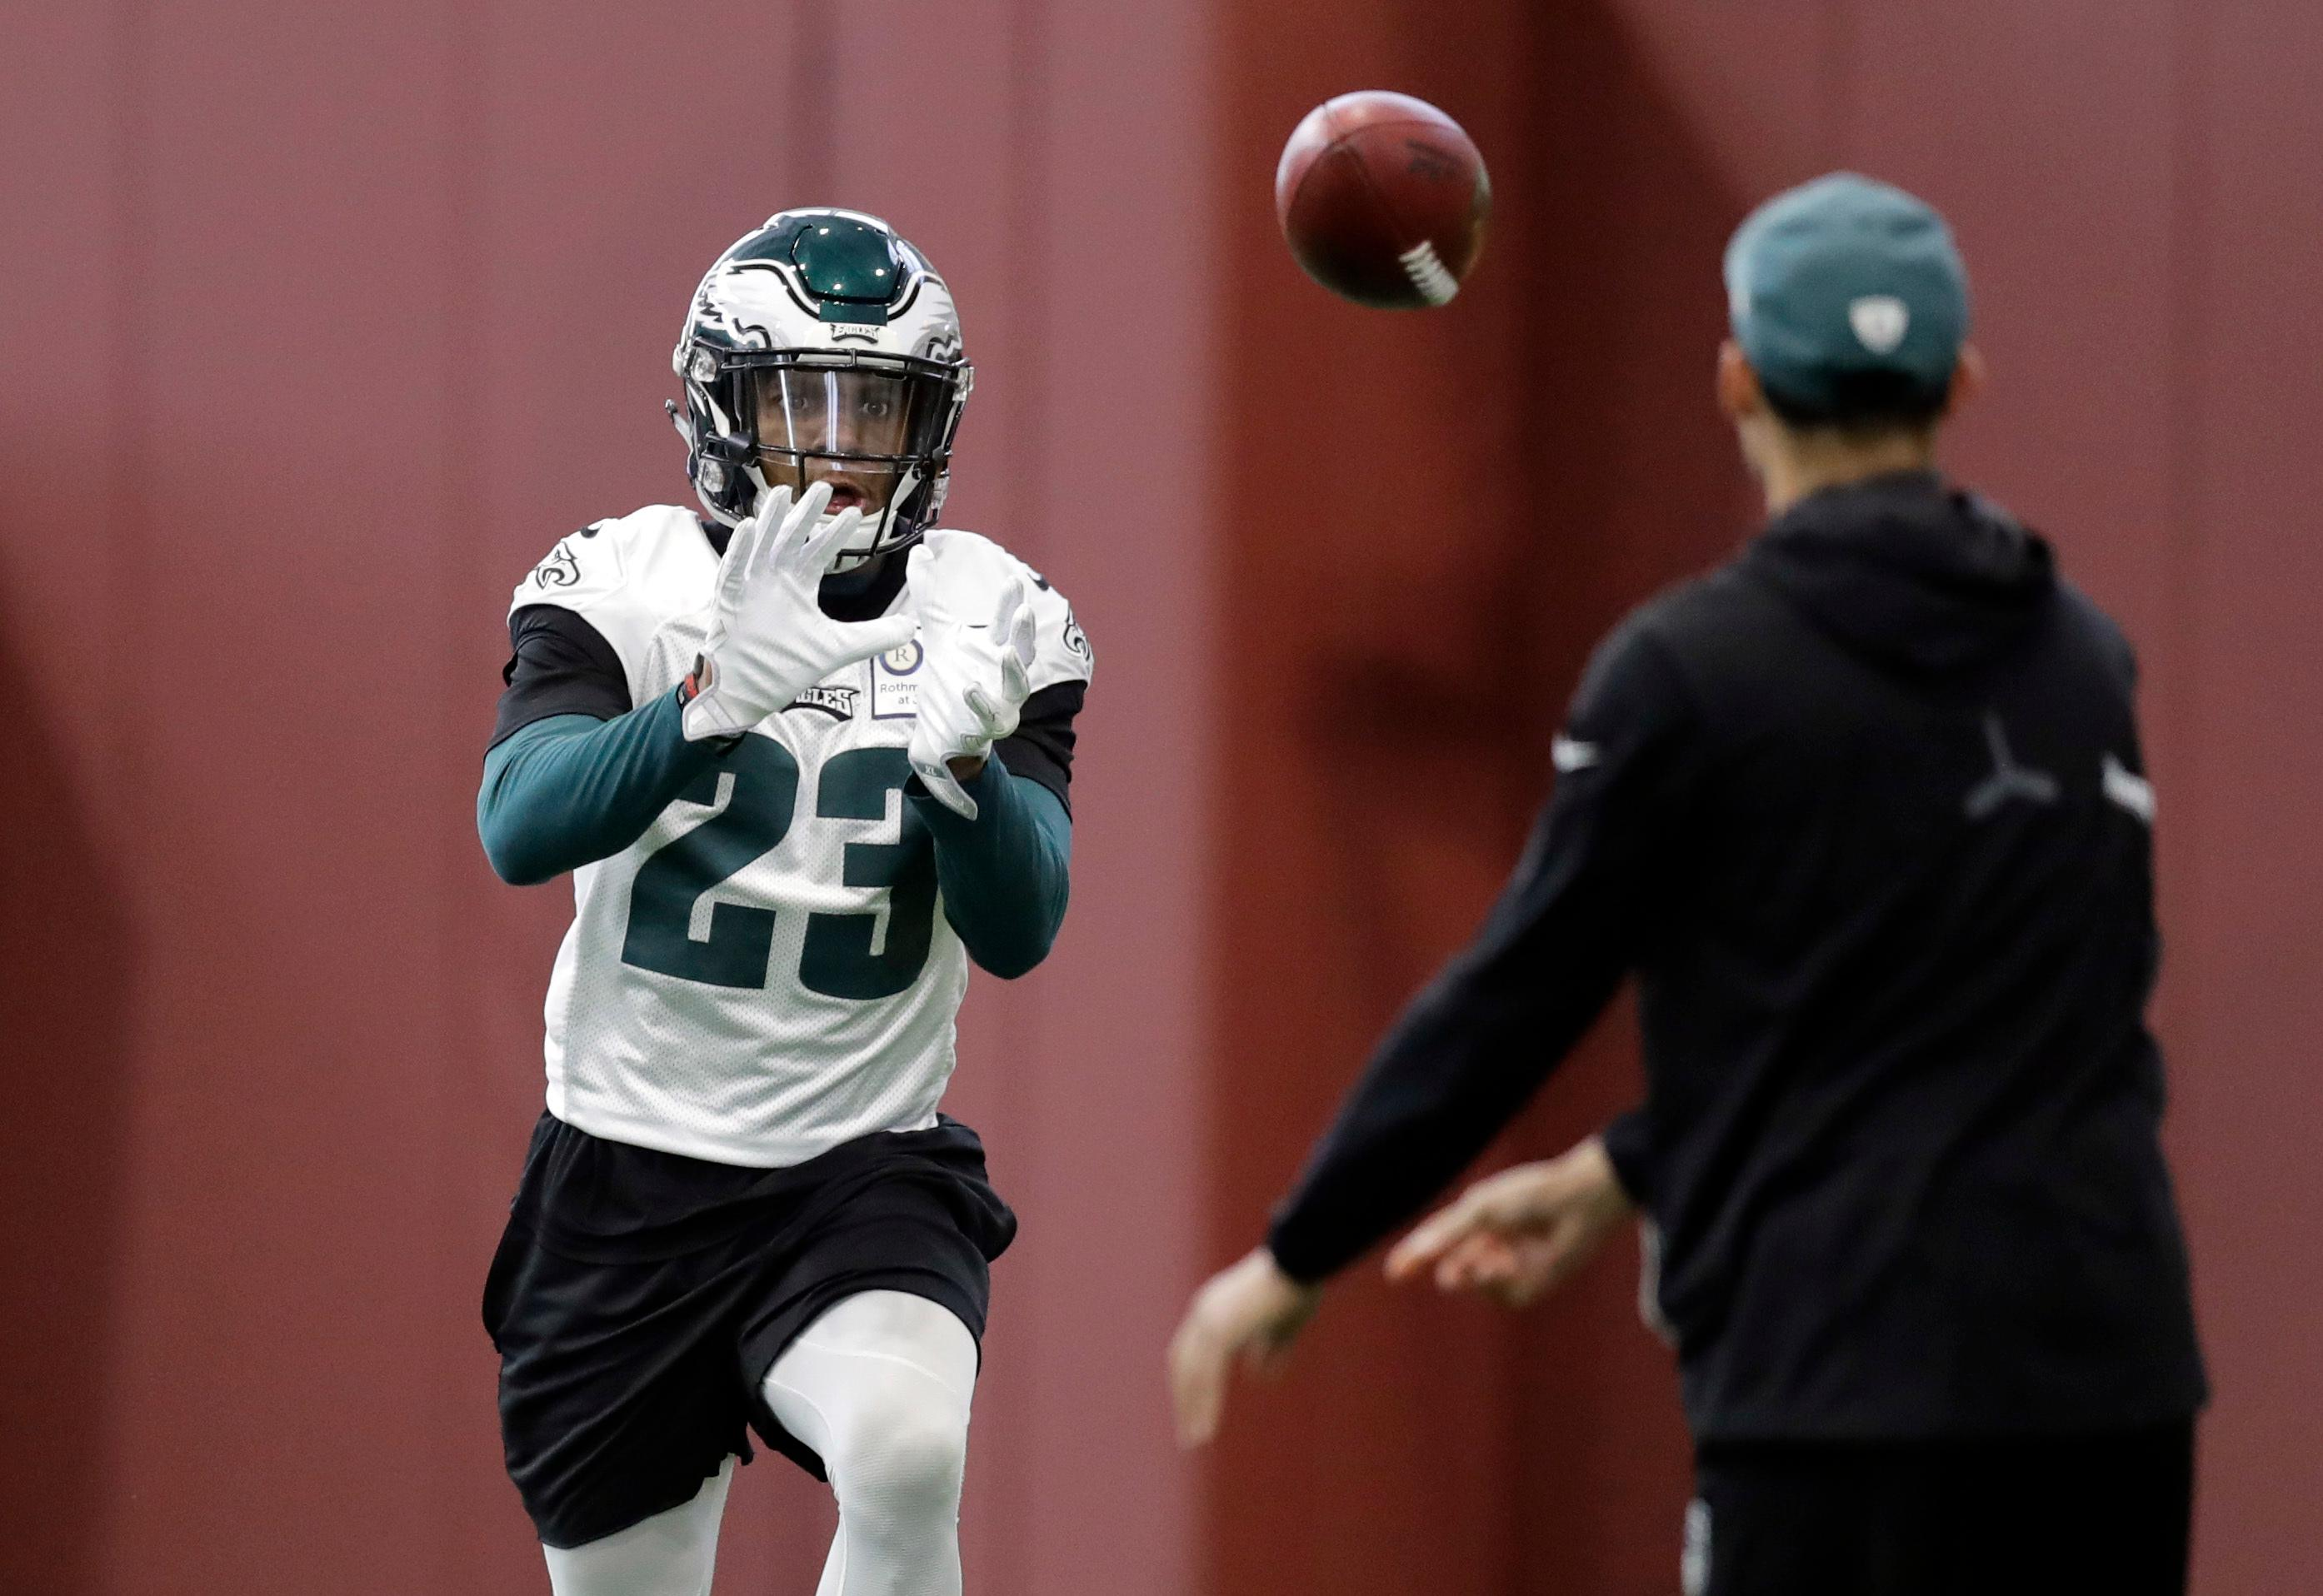 Philadelphia Eagles free safety Rodney McLeod (23) goes through drills during a practice for the NFL Super Bowl 52 football game Friday, Feb. 2, 2018, in Minneapolis. Philadelphia is scheduled to face the New England Patriots Sunday. (AP Photo/Eric Gay)